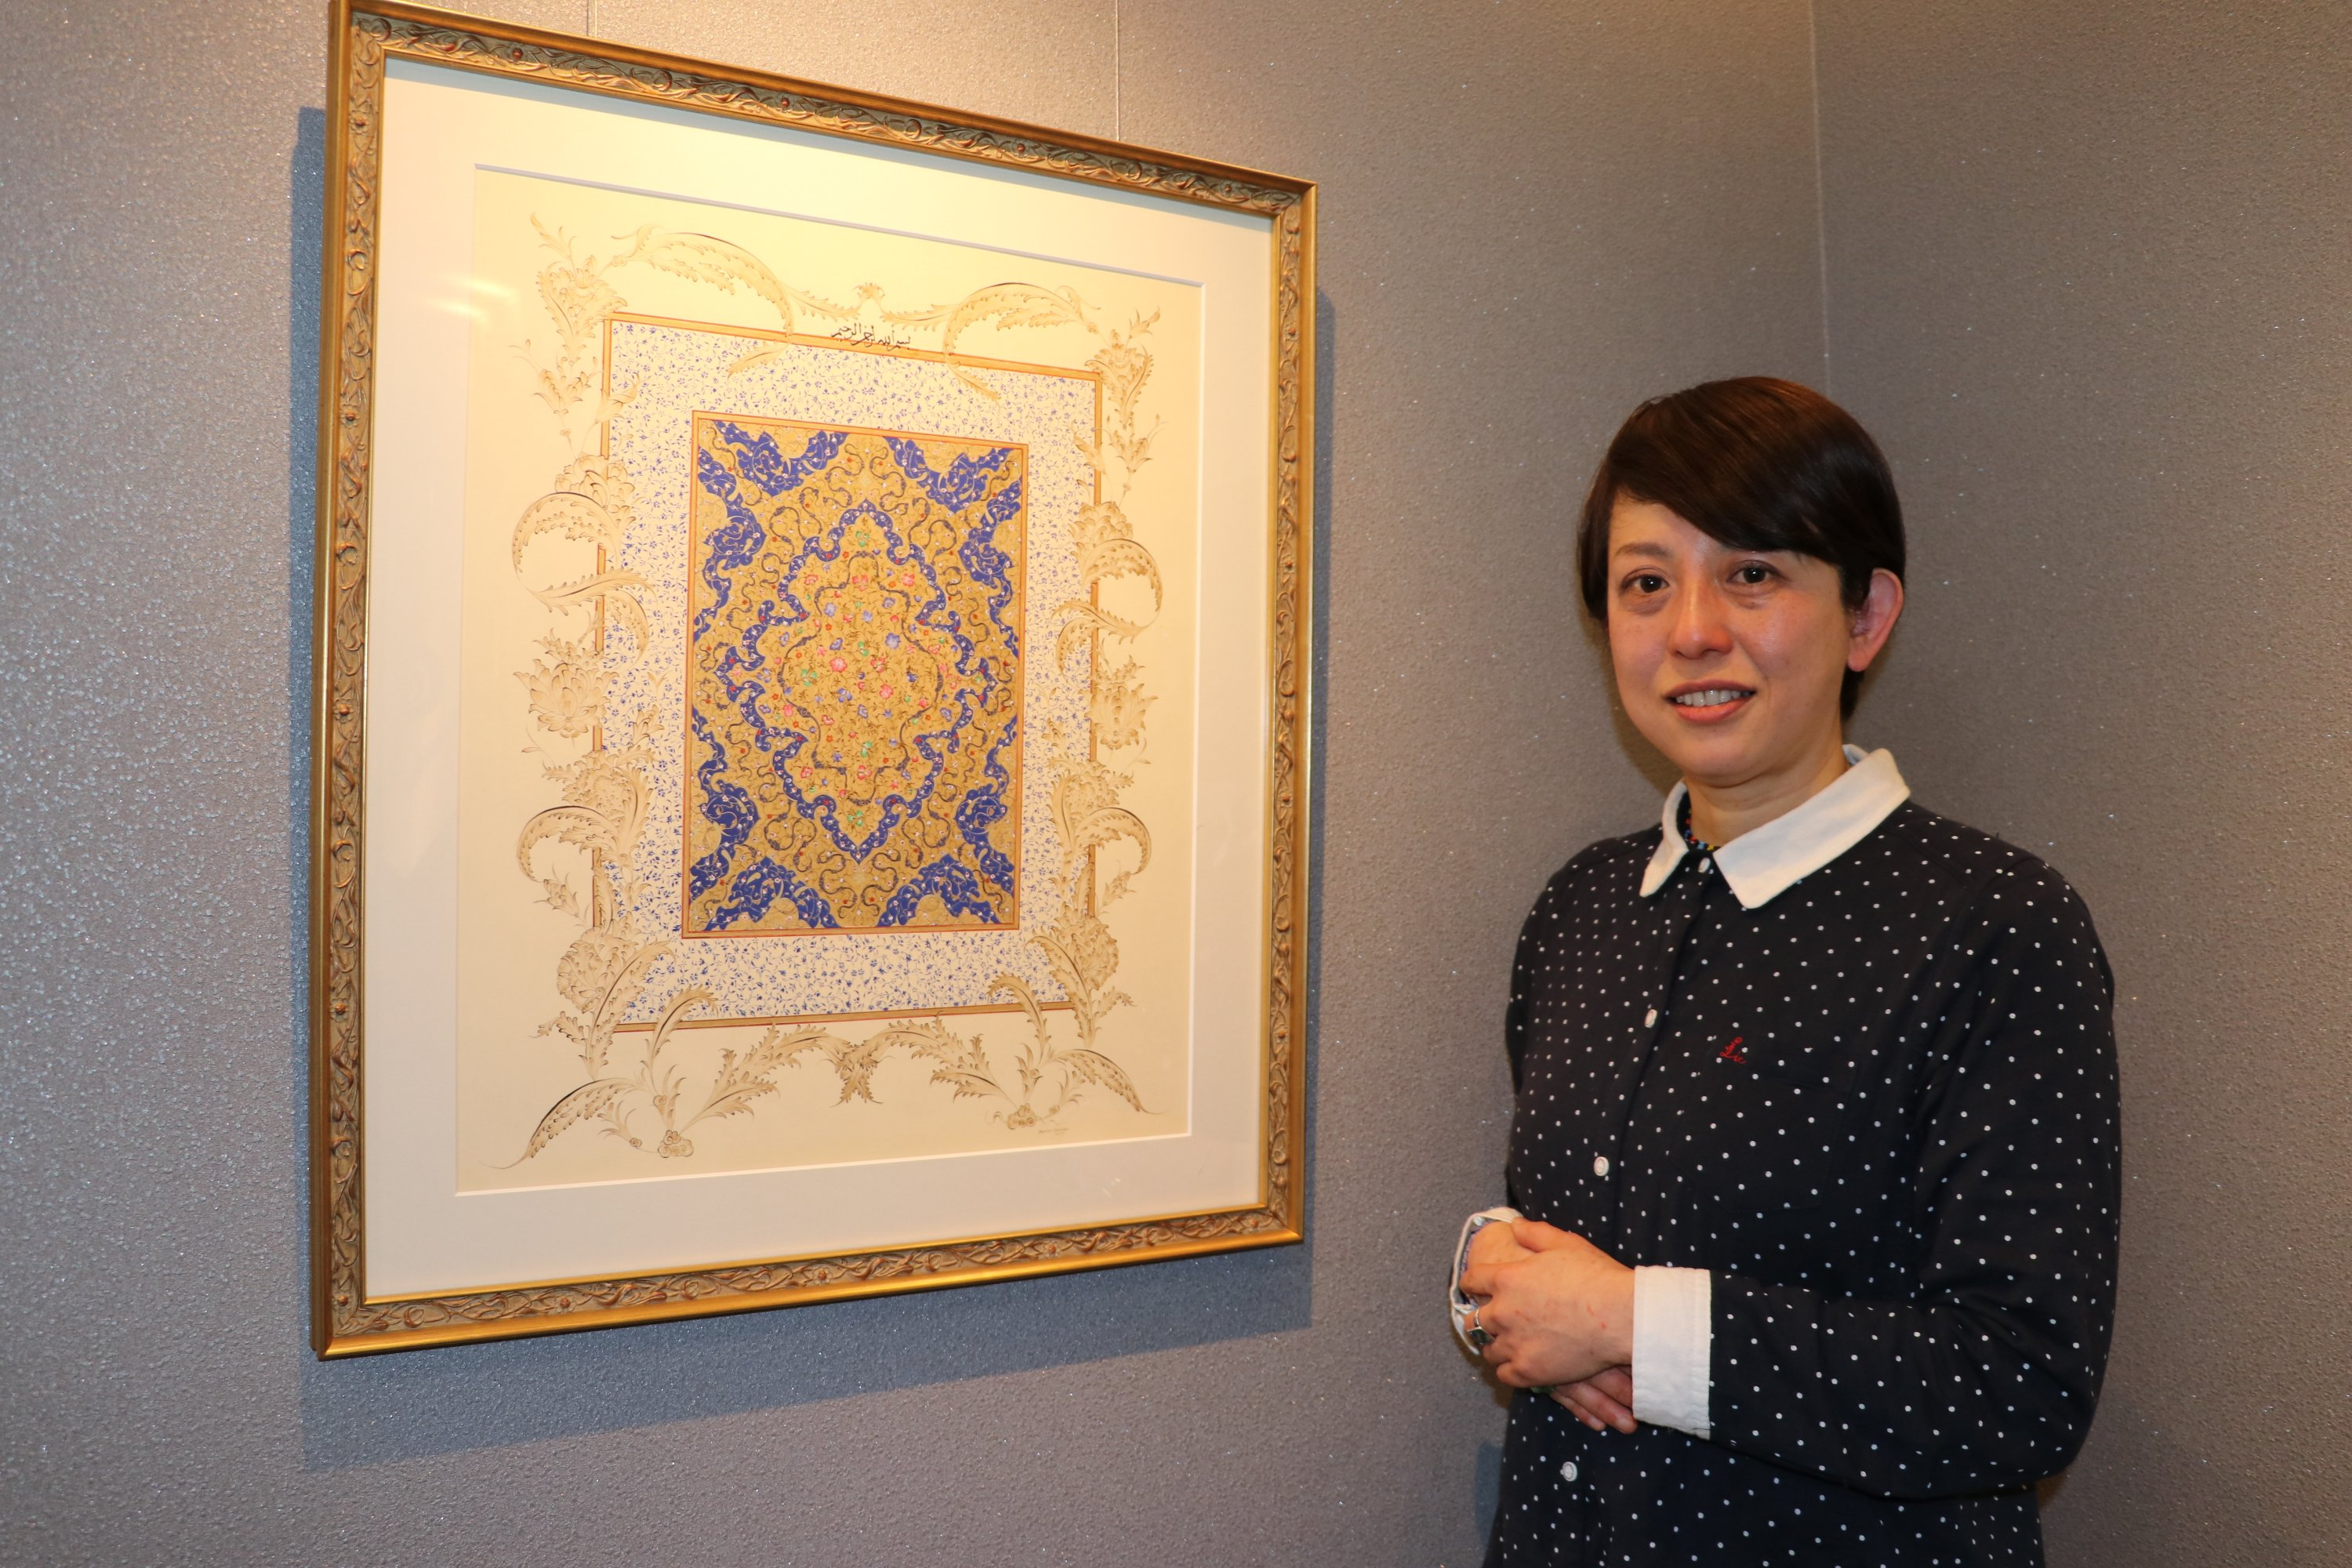 Fumiko Takahor poses with her work featuring saz yolu motif at Yunus Emre Institute, Tokyo, Japan, Feb. 3, 2020. (AA Photo)